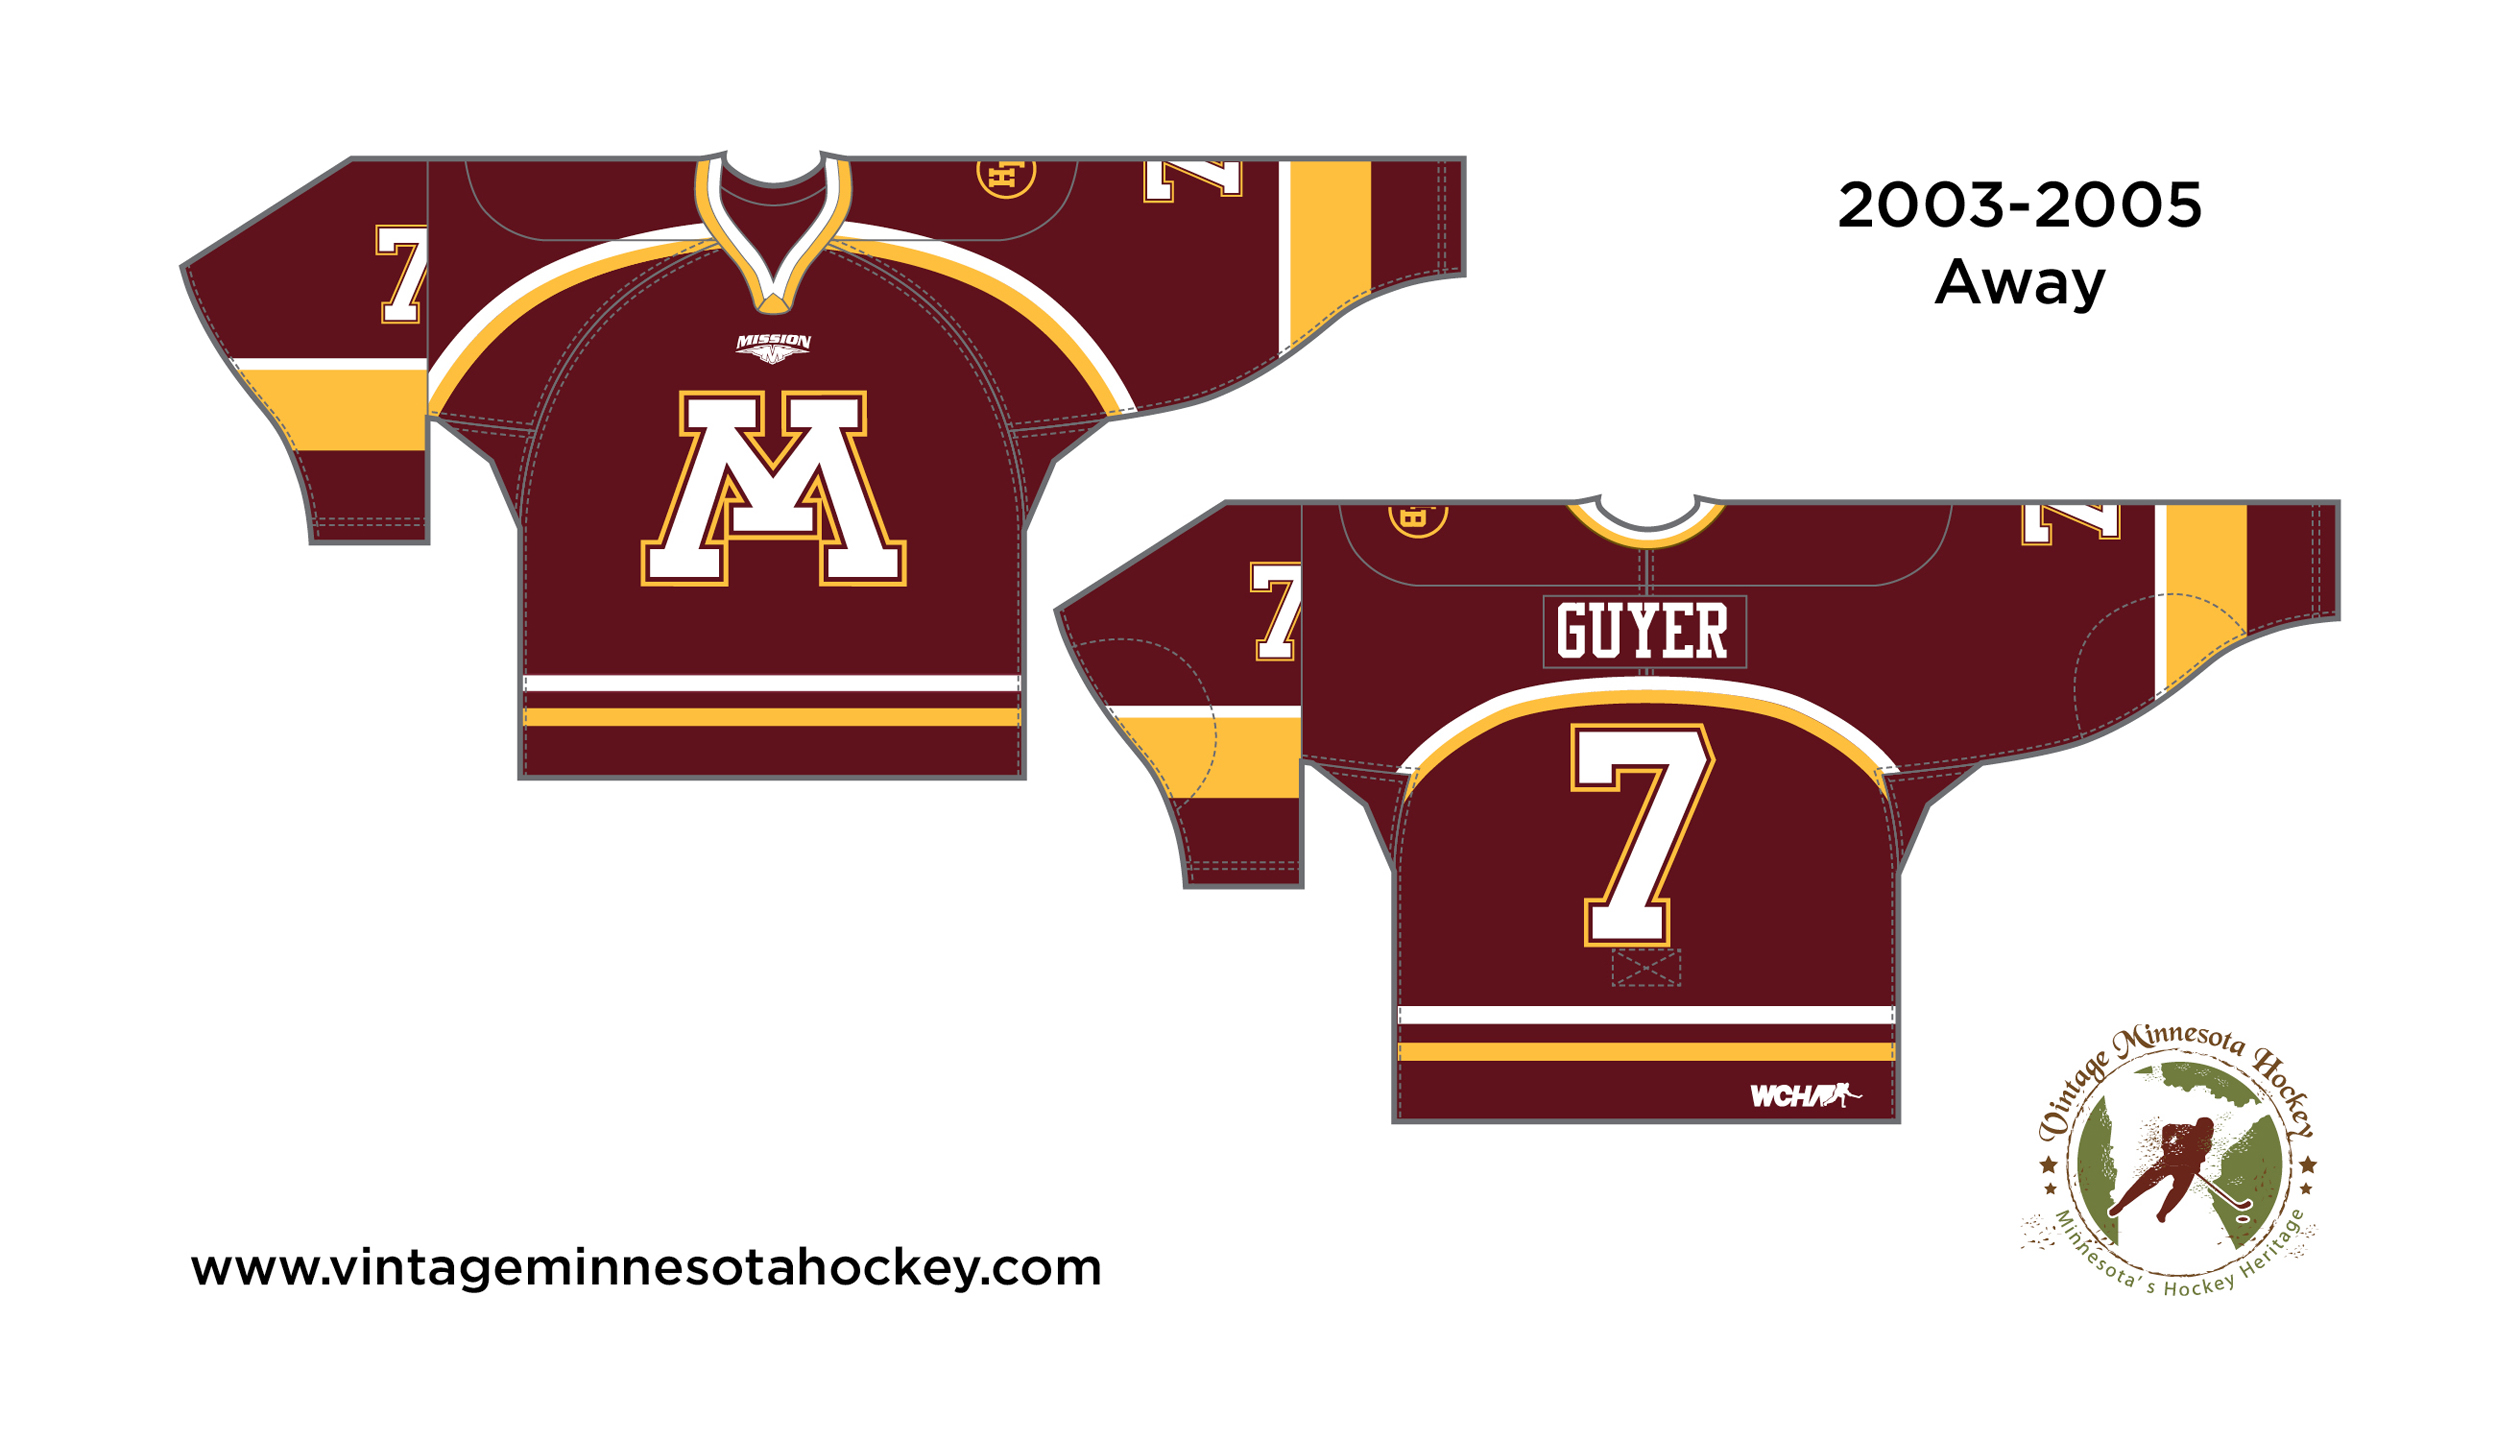 VMH_GopherJerseys_62.jpg